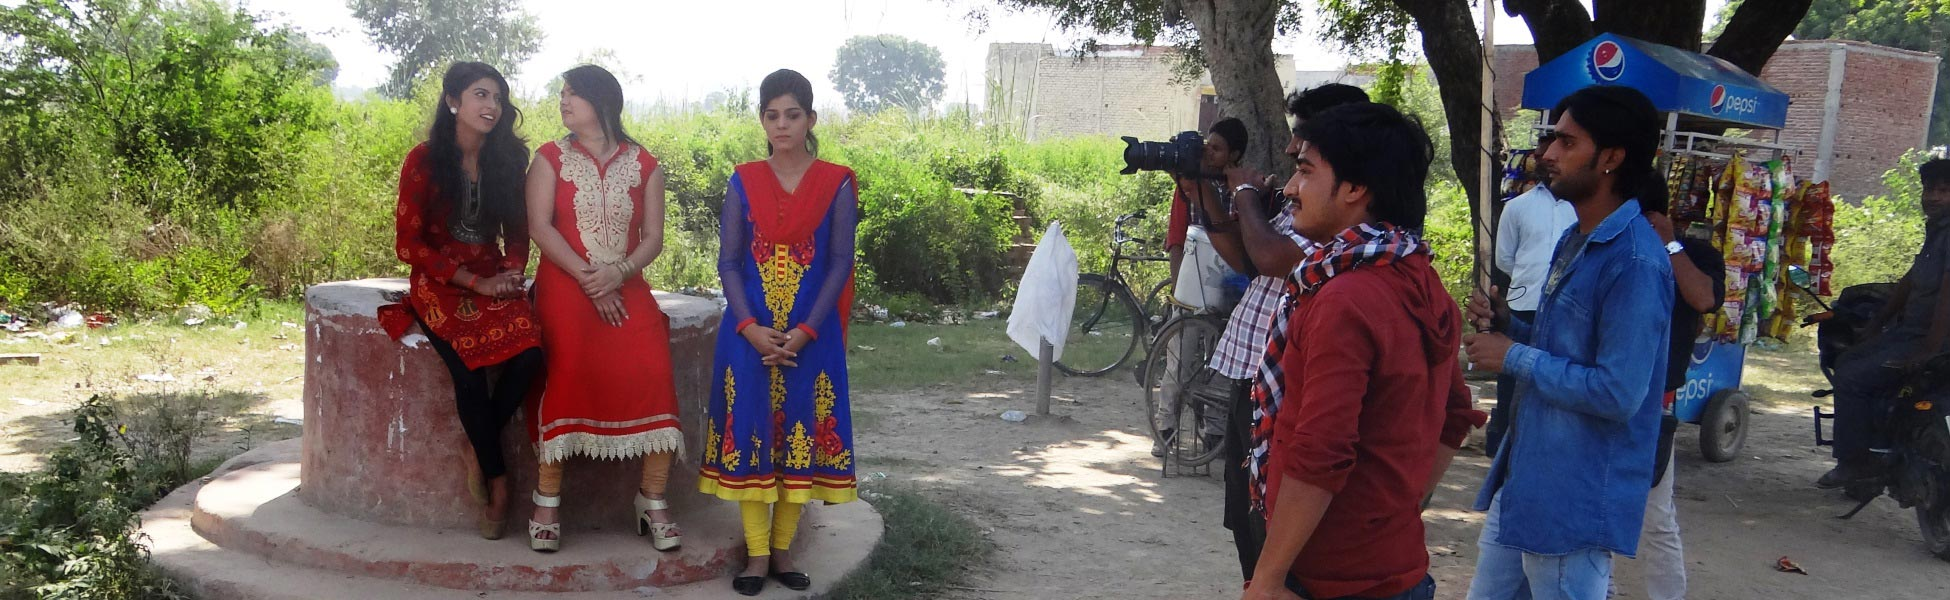 short film production services in india, short film production services in uttar pradesh, short film production services in ghaziabad